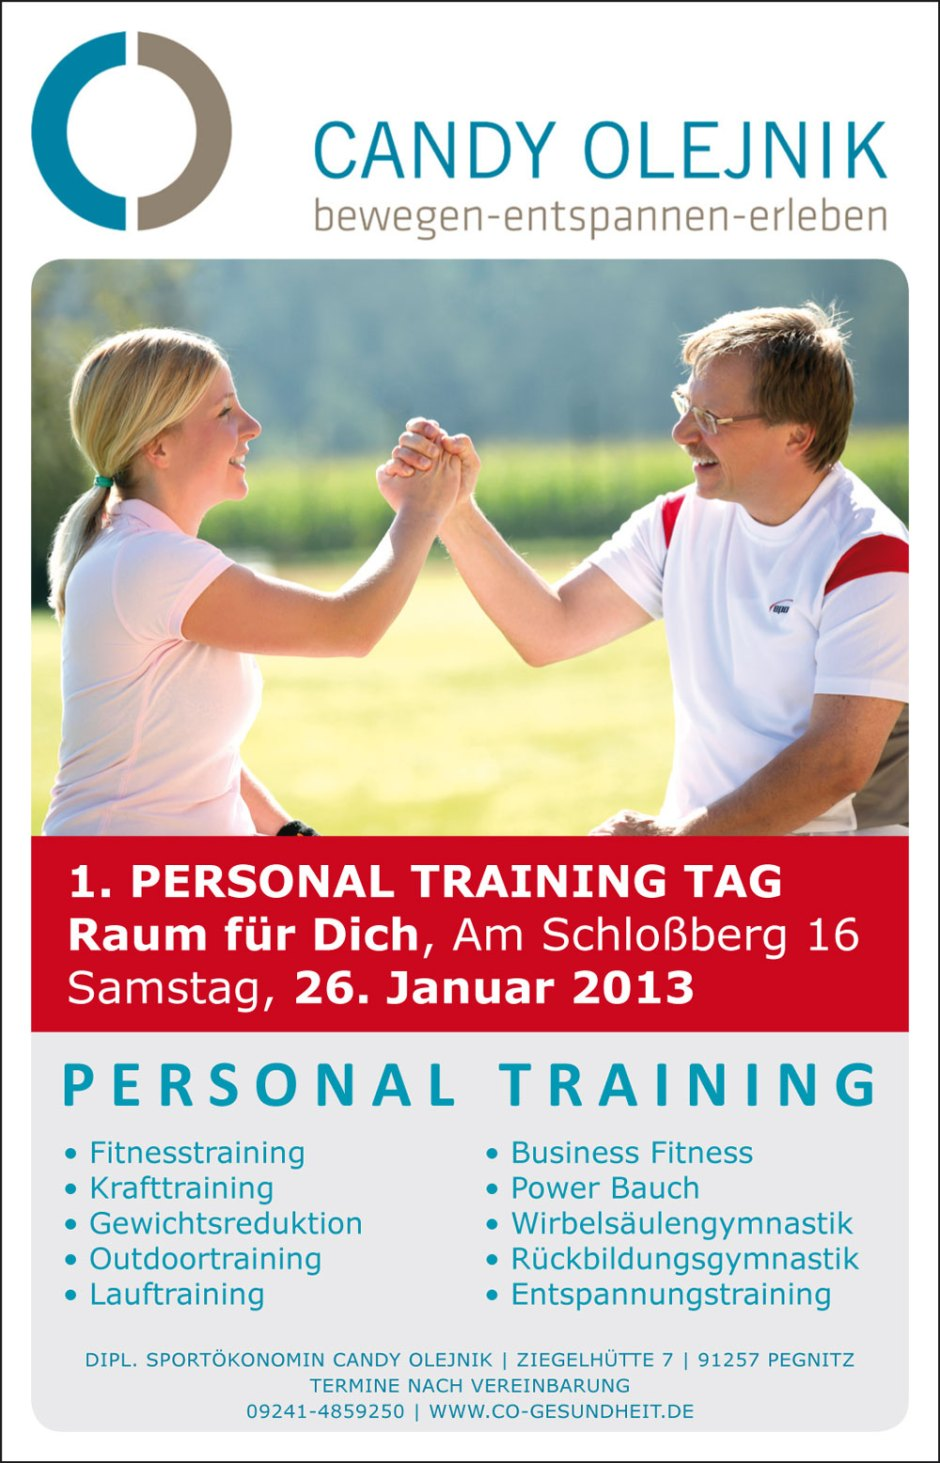 1. Personal Training Tag in Pegnitz